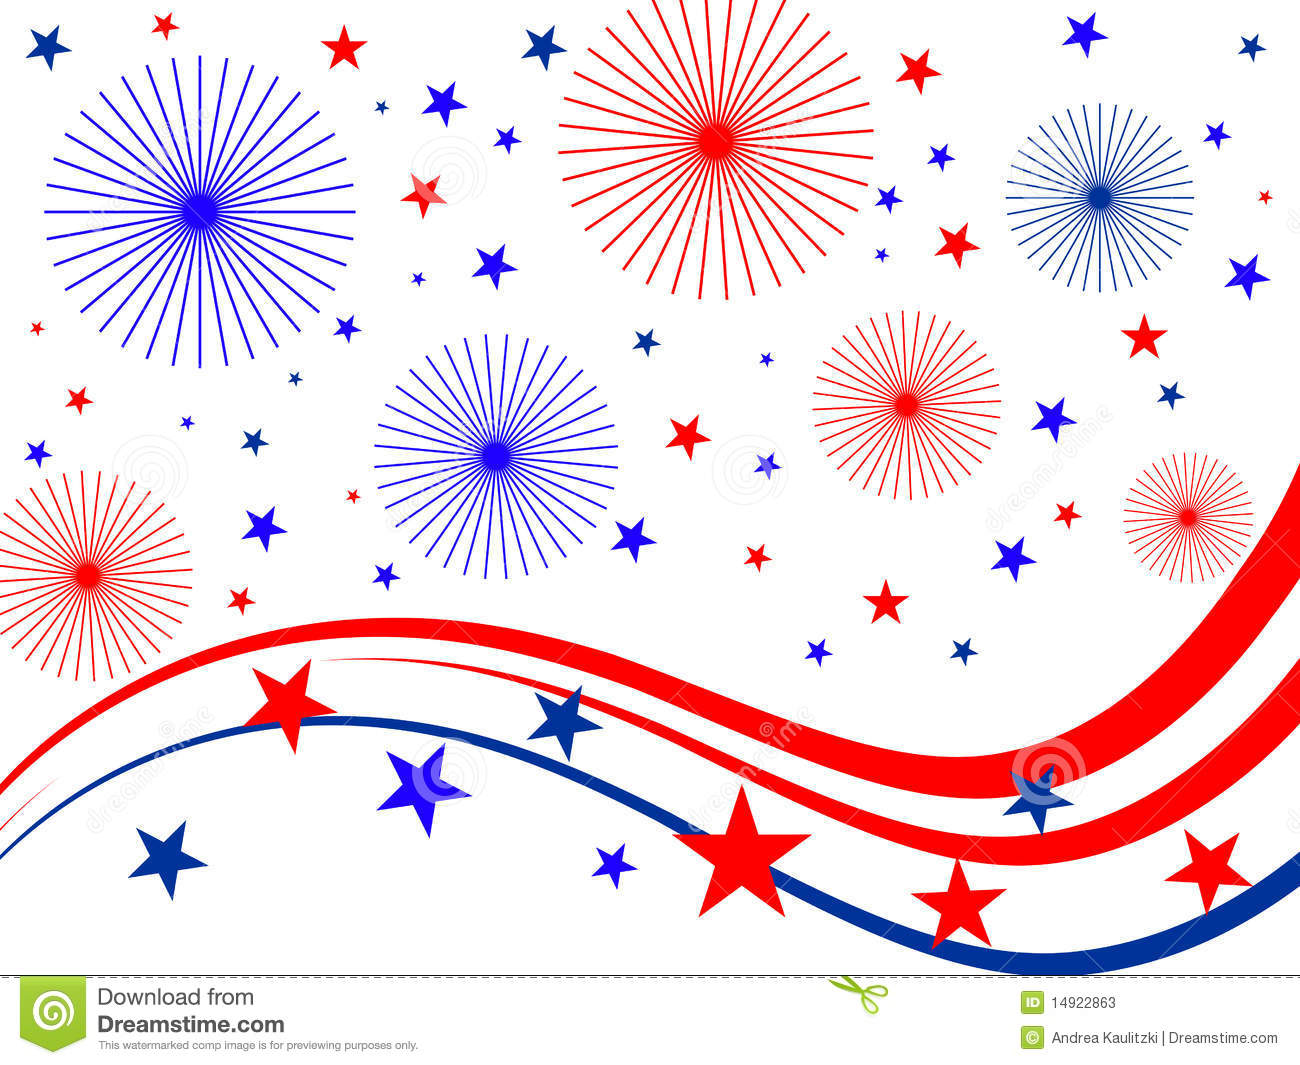 Fireworks clipart independence day firework Day Fireworks Independence Independence cliparts